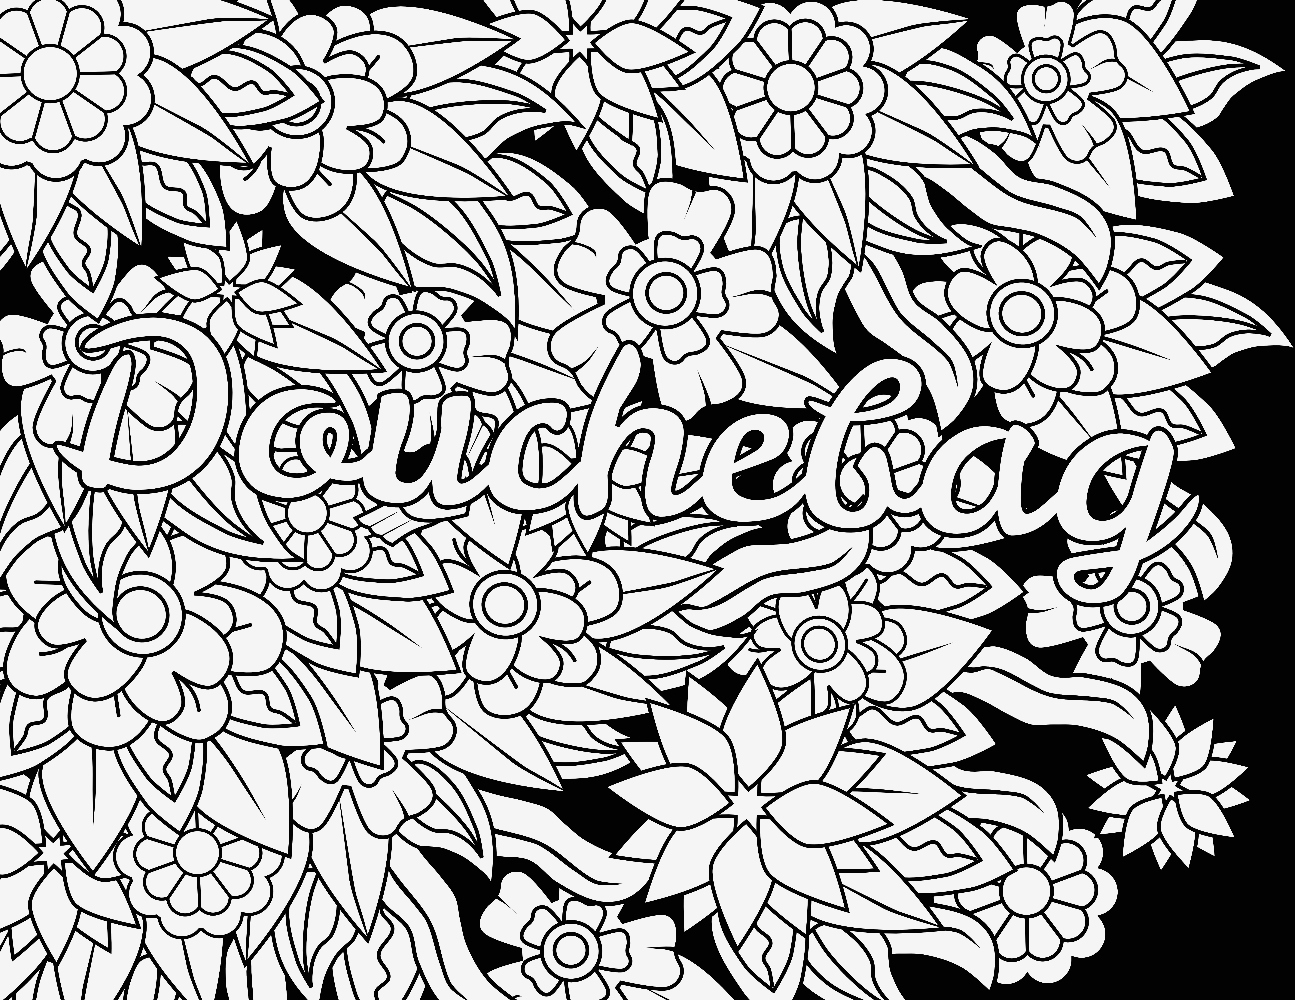 free printable mandalas coloring pages Collection-Easy Adult Coloring Pages Awesome S S Media Cache Ak0 Pinimg 736x 0d 71 C1 Free Coloring 8-j